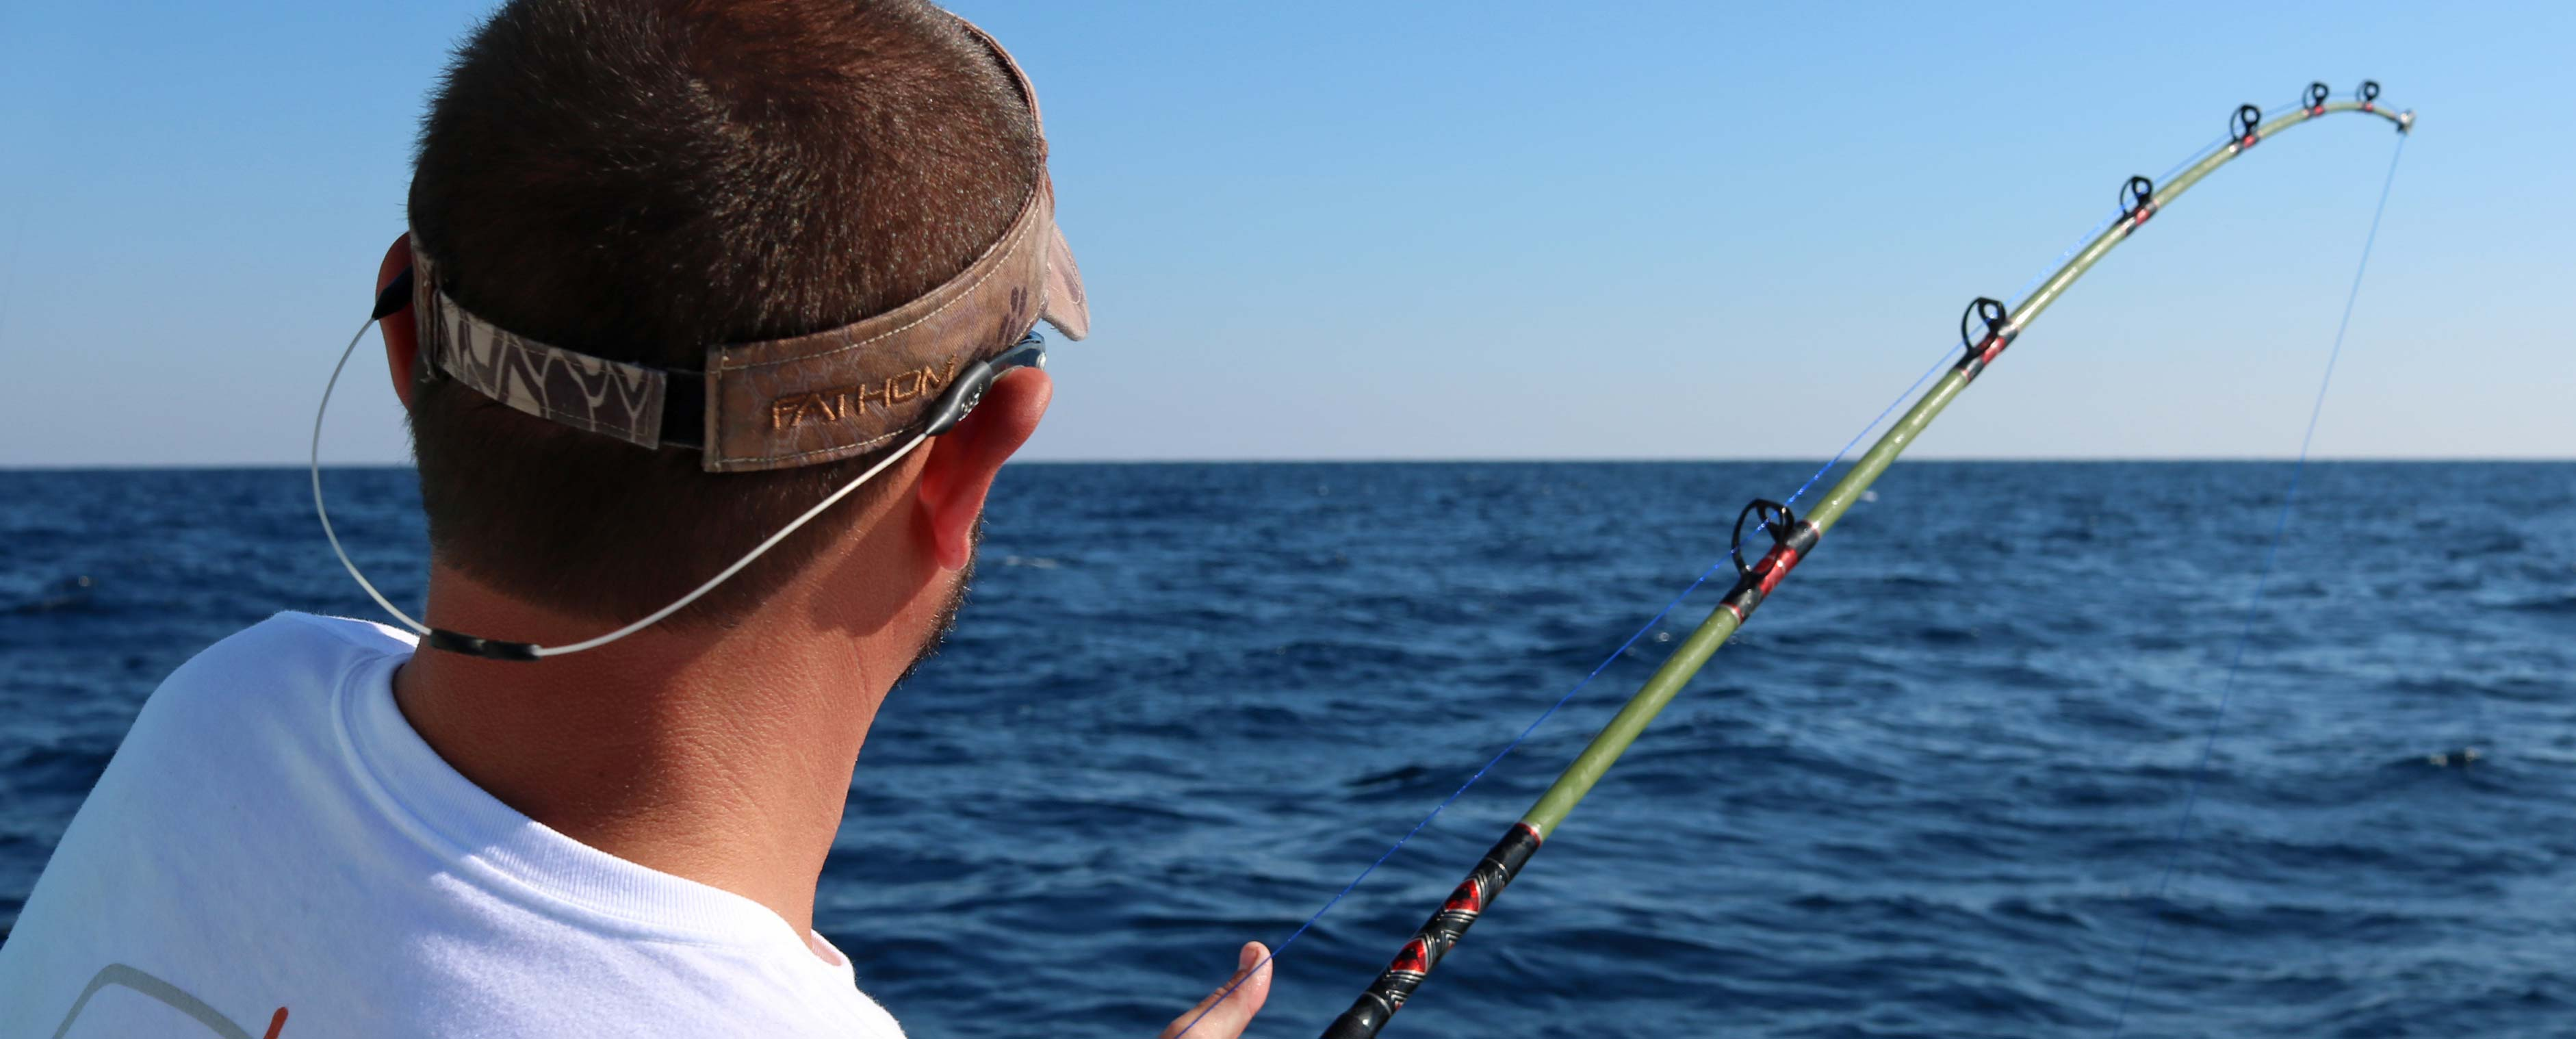 Destin fishing charters charter boat sea winder for Fishing destin fl